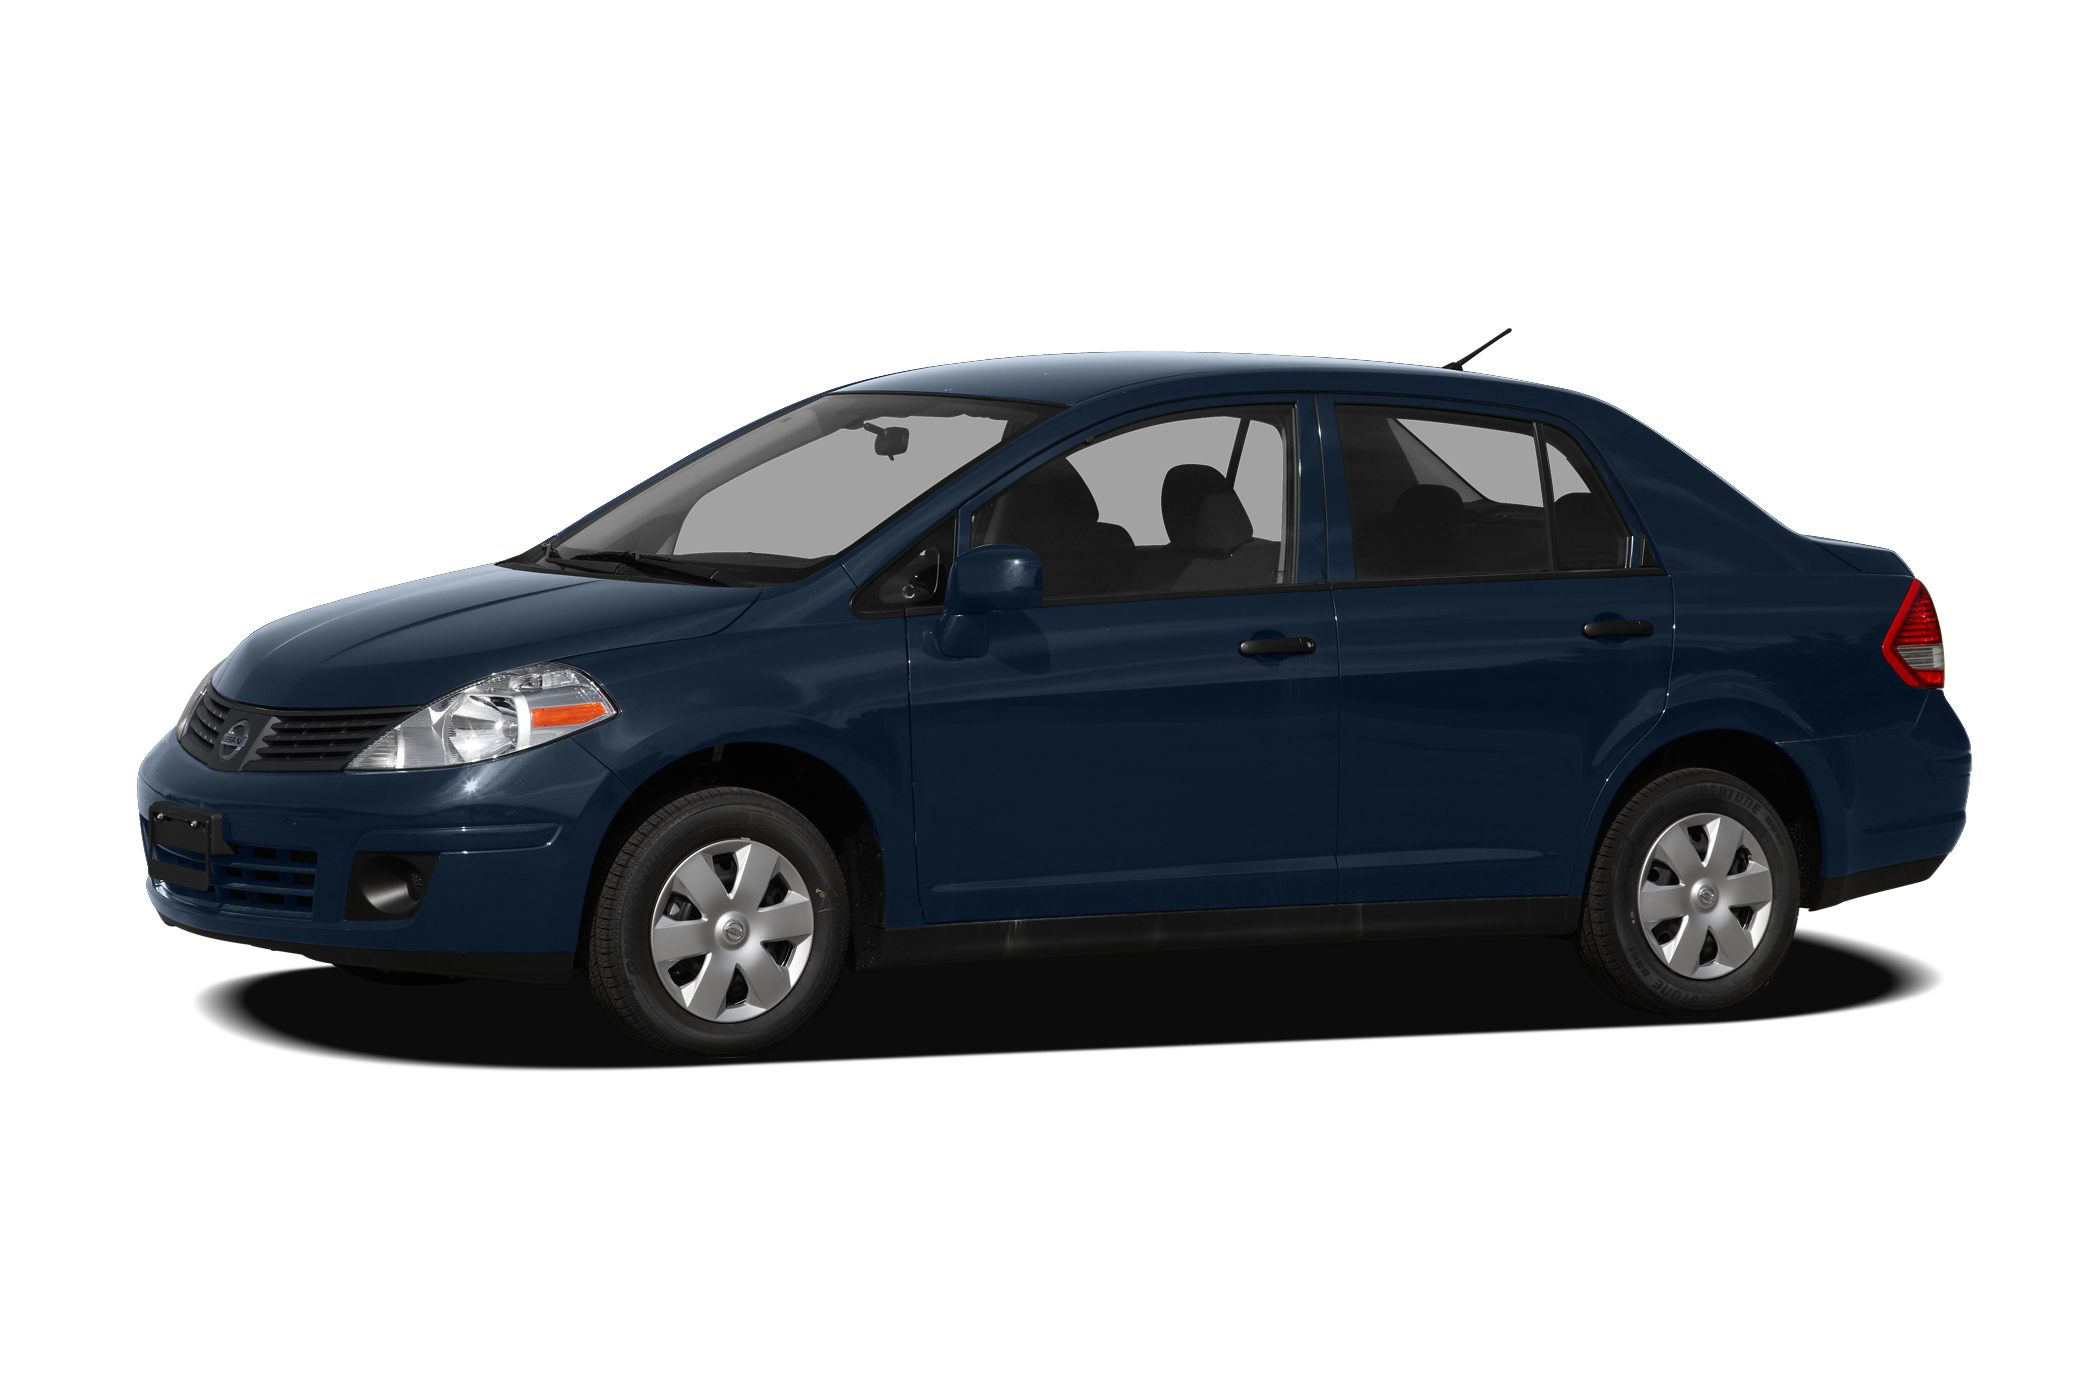 2010 Nissan Versa 1.8 S Hatchback for sale in Morrow for $8,954 with 84,805 miles.